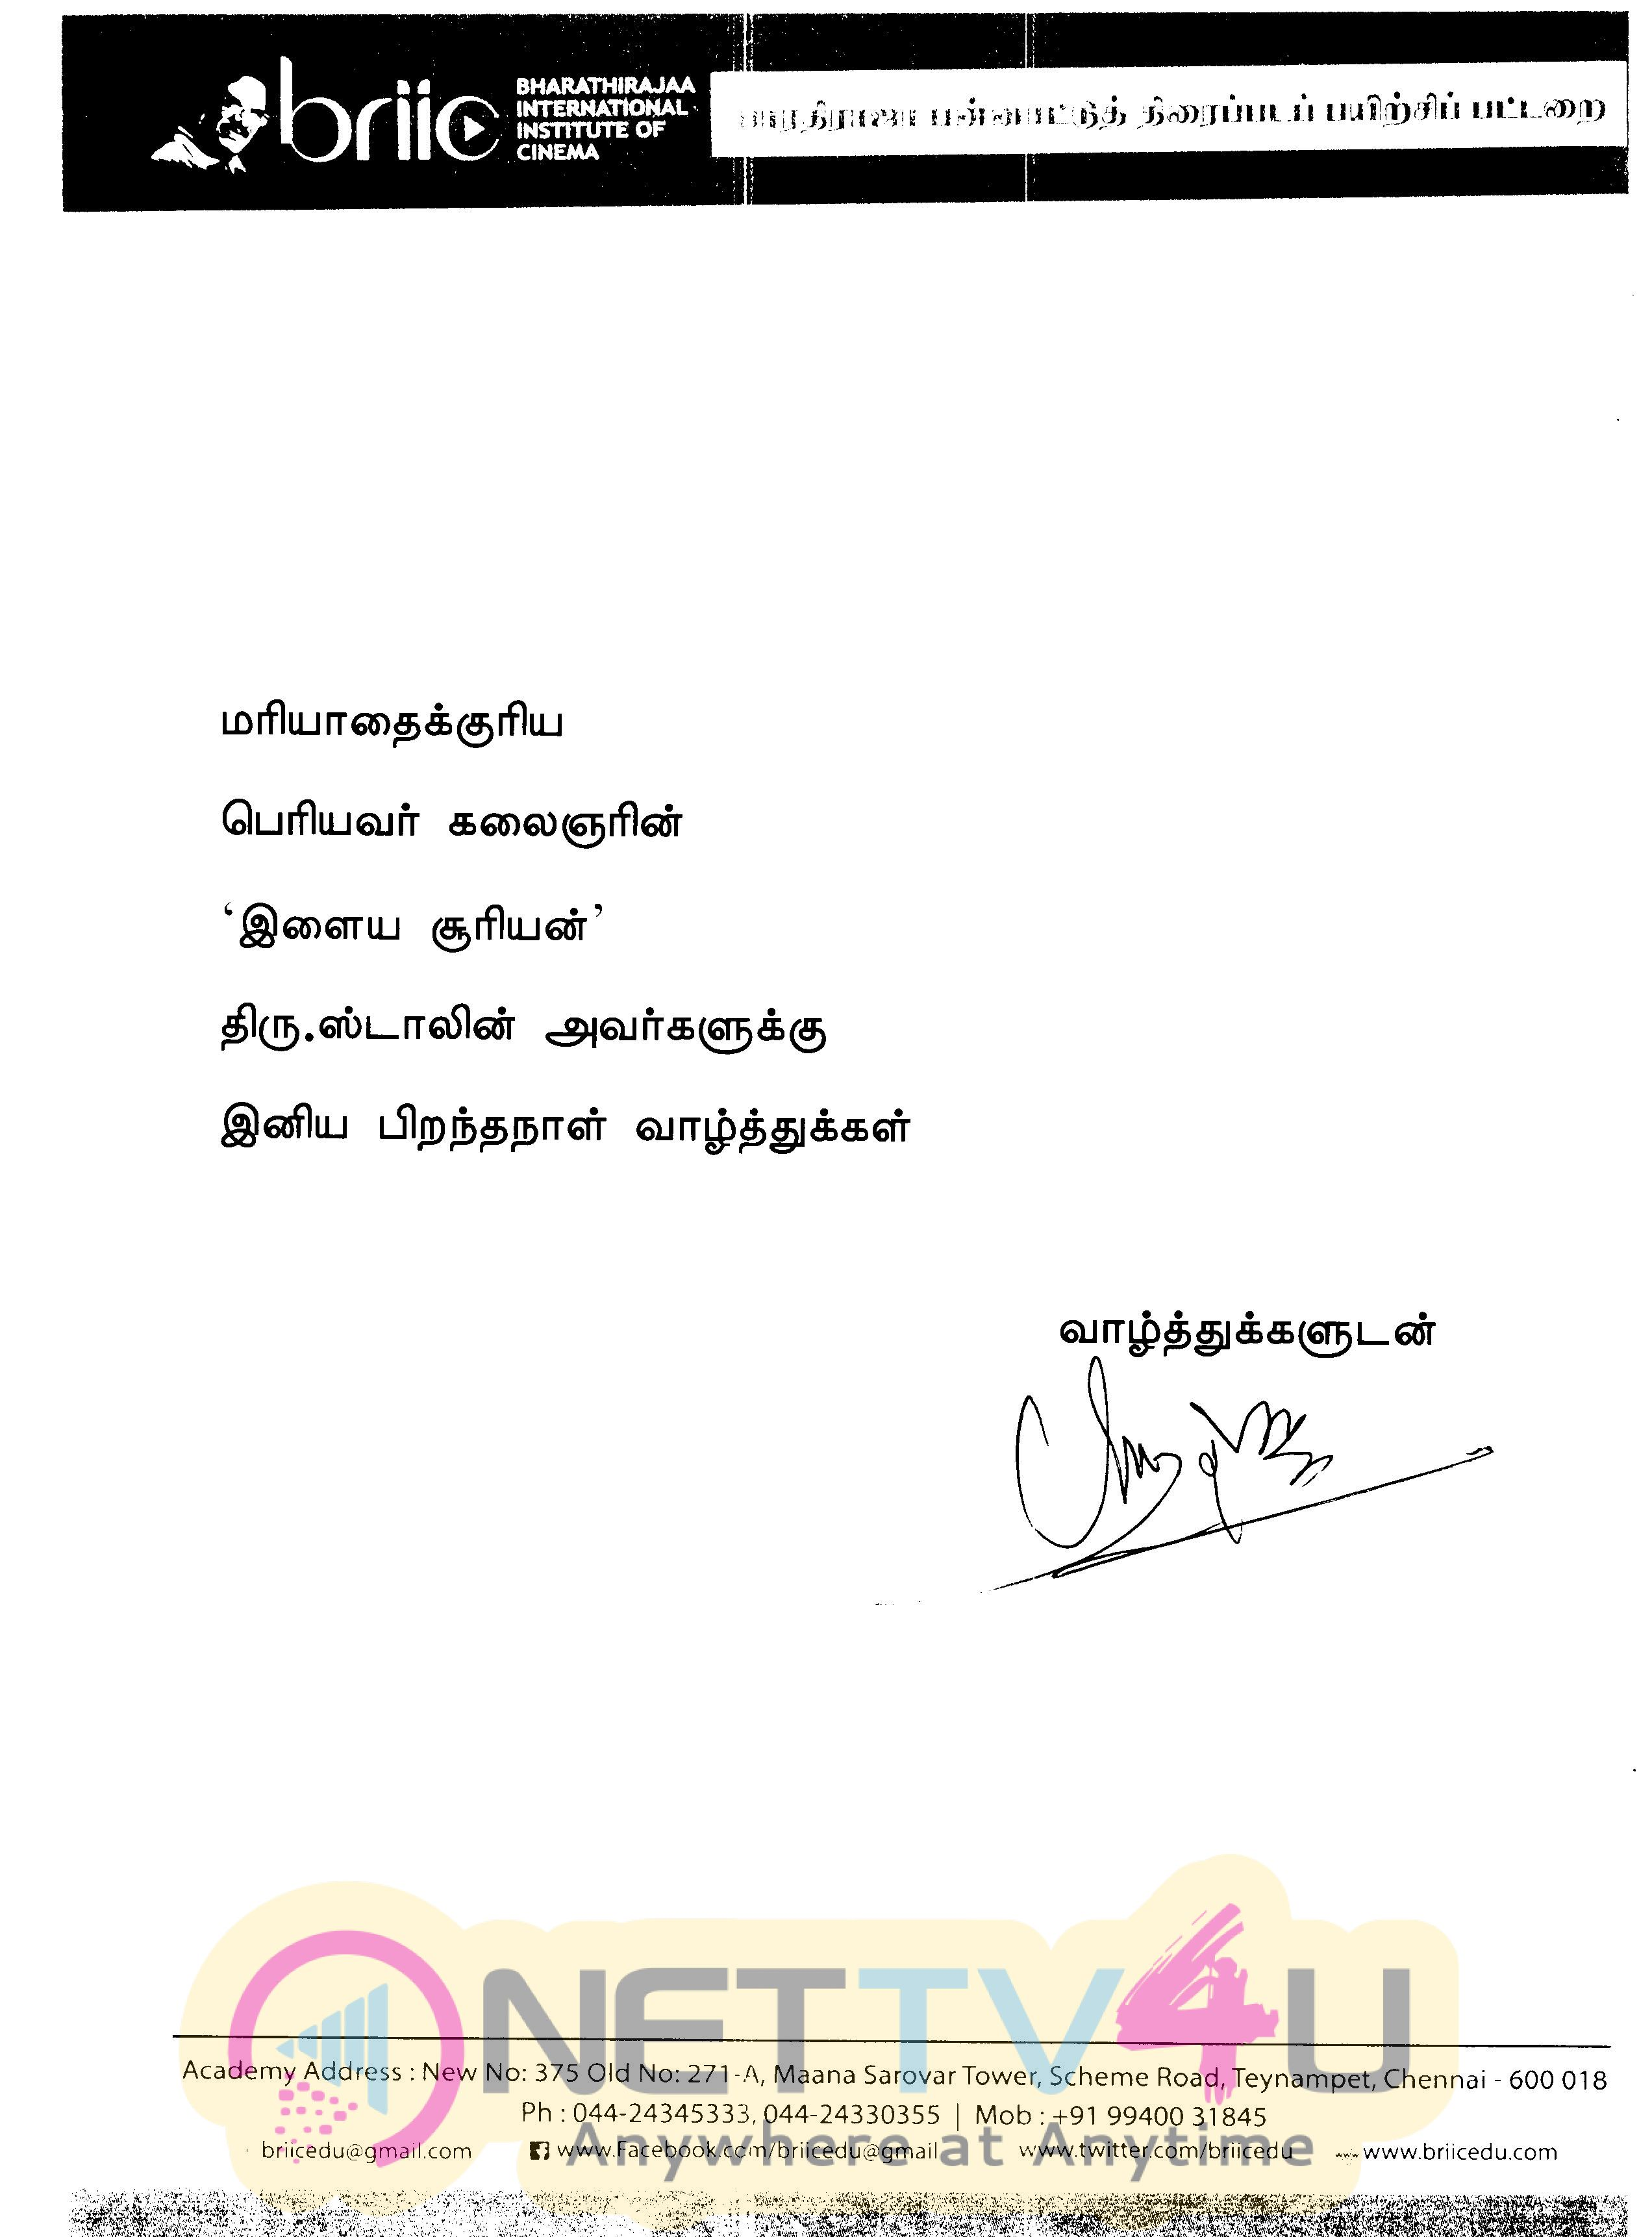 Birthday Wishes For MK Stalin From Director Bharathiraja